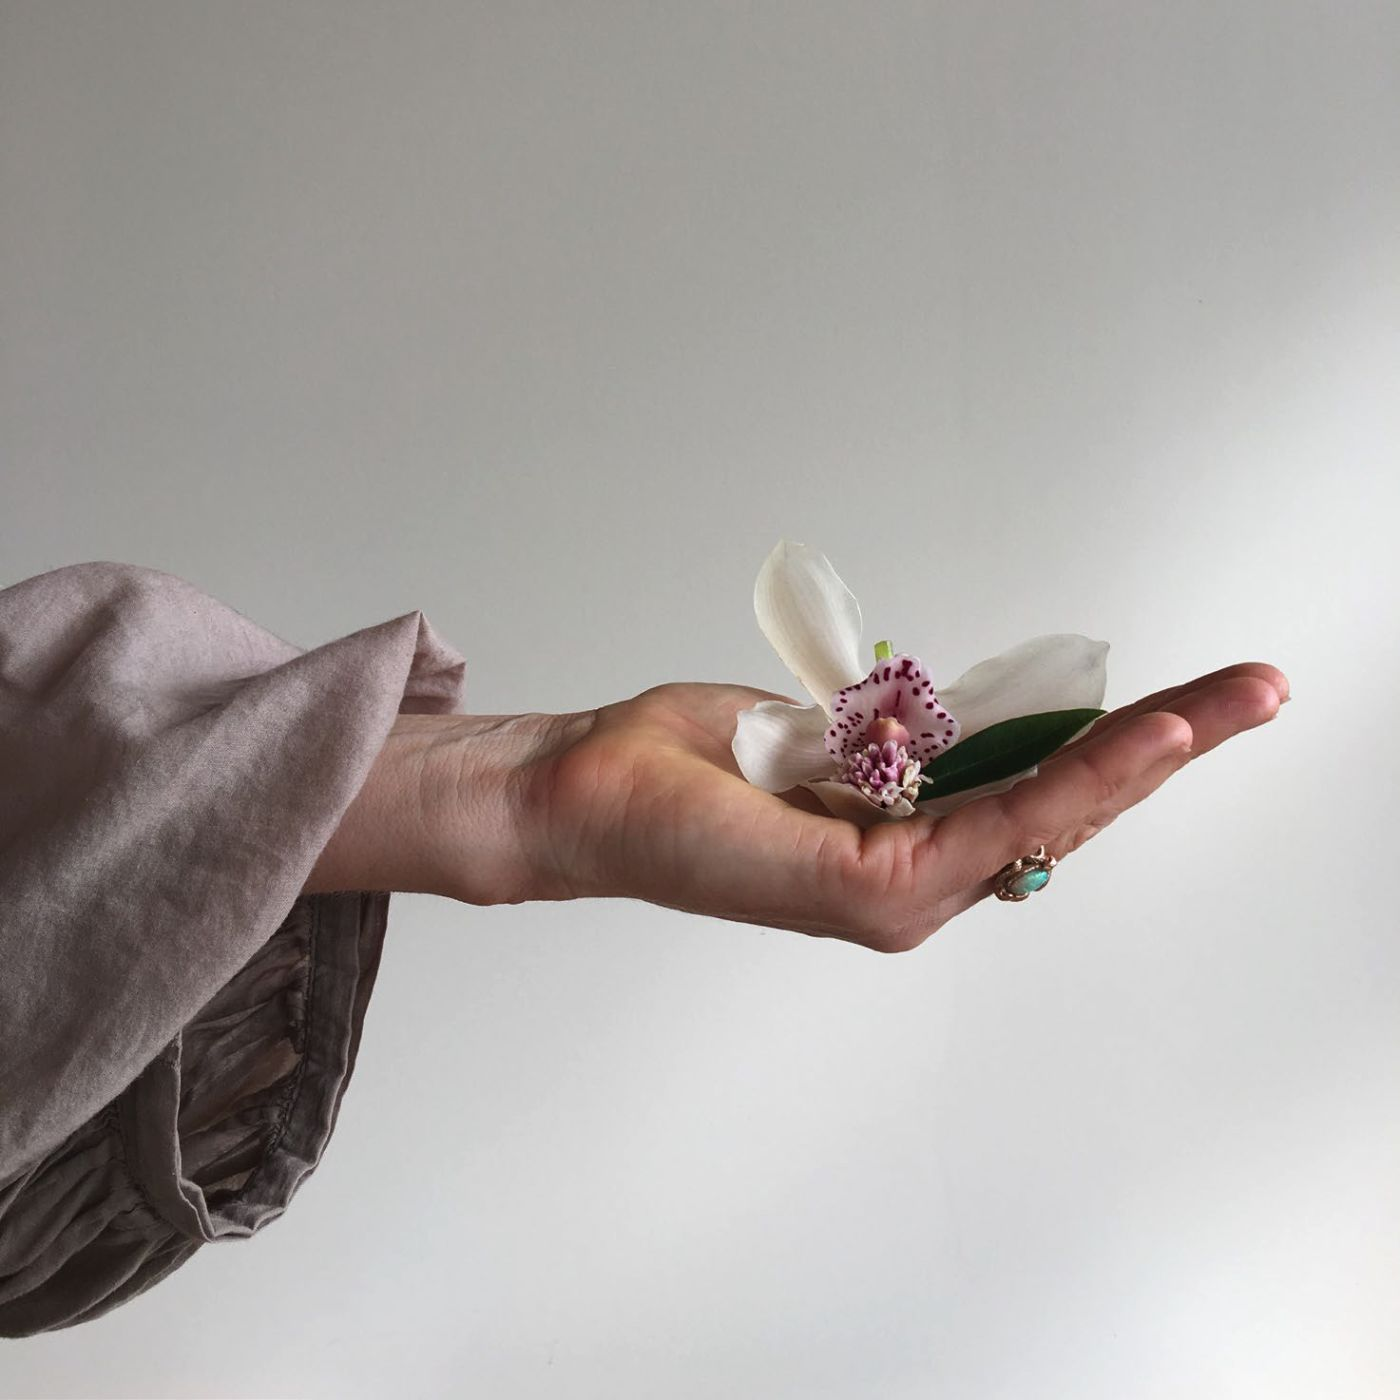 A hand holding a flower